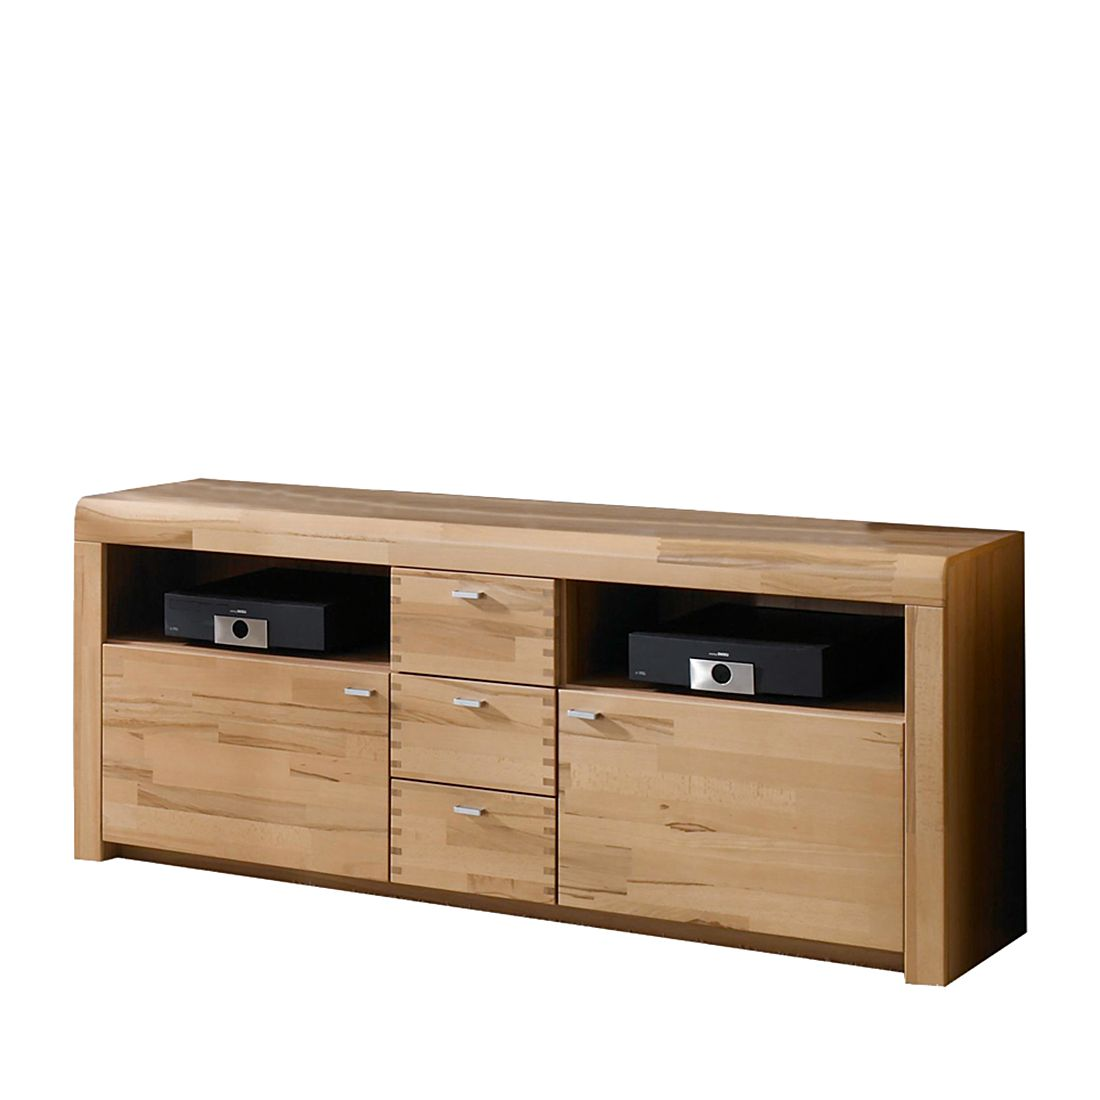 tv sideboard wutan kernbuche teilmassiv natur lackiert. Black Bedroom Furniture Sets. Home Design Ideas